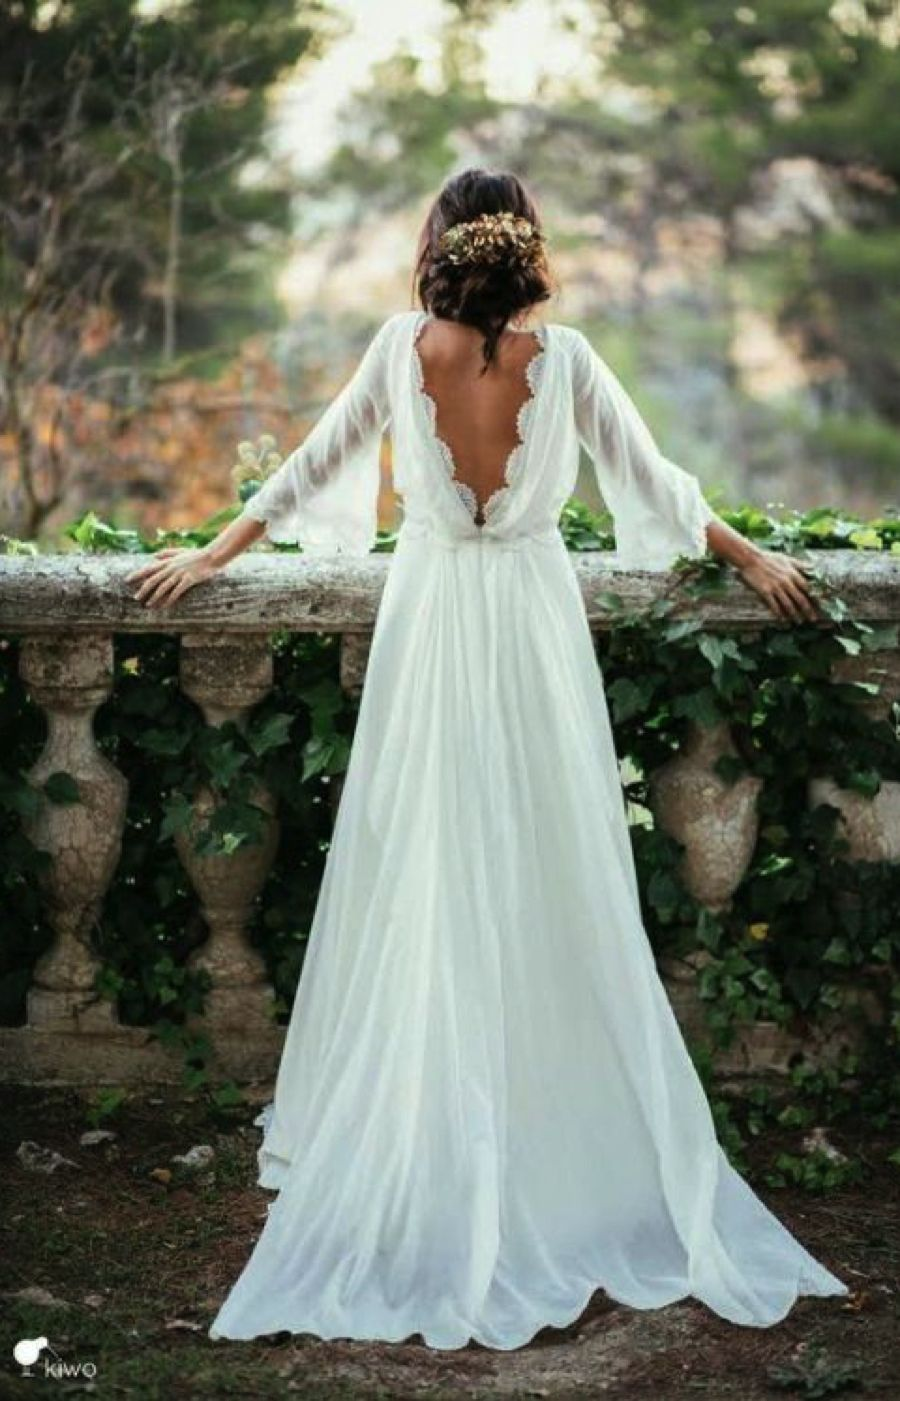 Where To Buy Wedding Dresses Near Me | Wedding dress, Weddings and ...